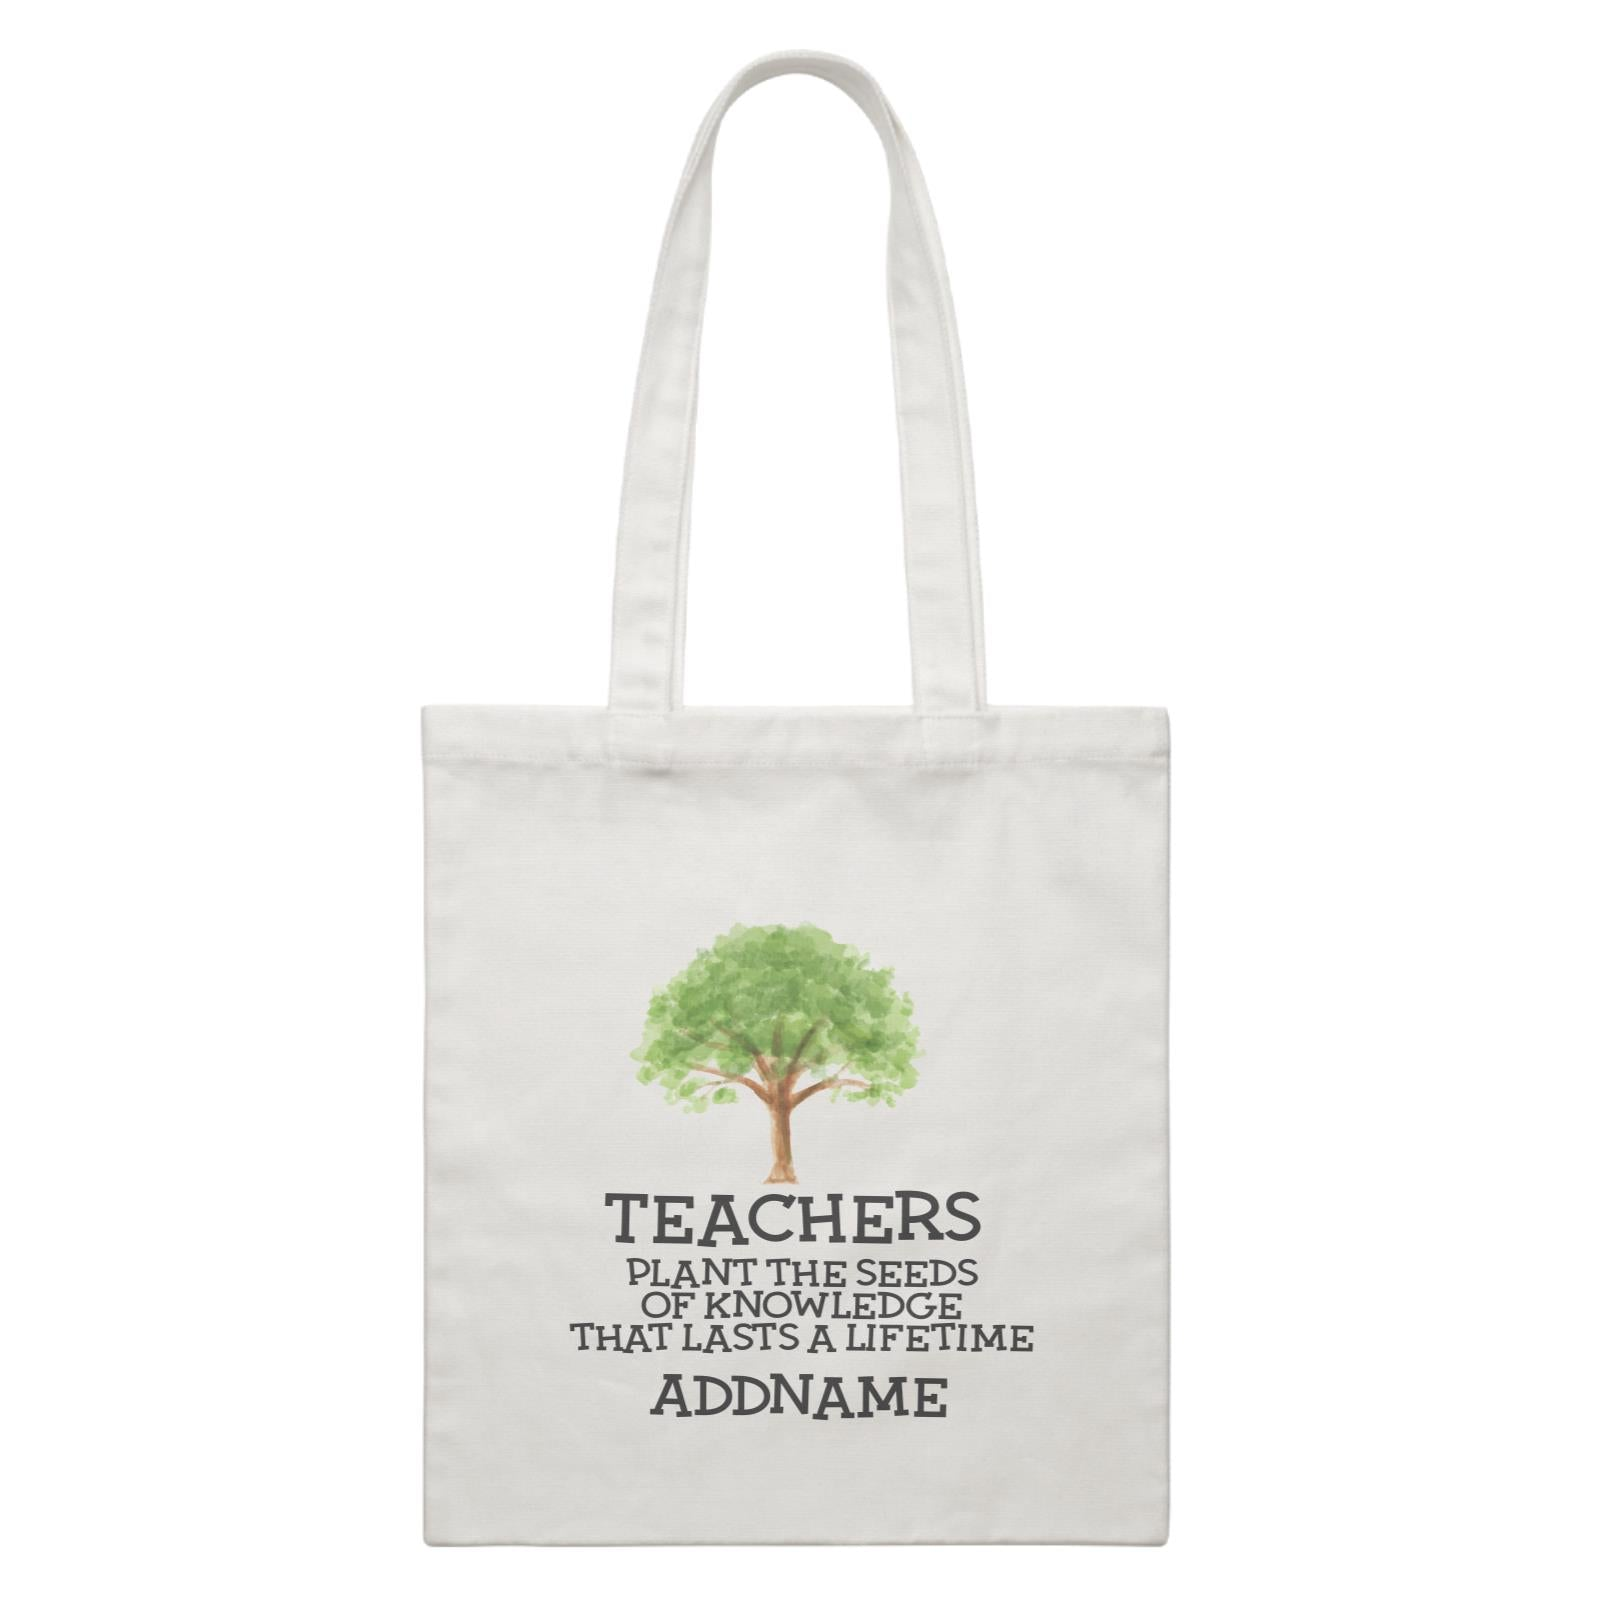 Teacher Quotes 2 Teachers Plant The Seeds Of Knowledge That Lasts A Lifetime Addname White Canvas Bag